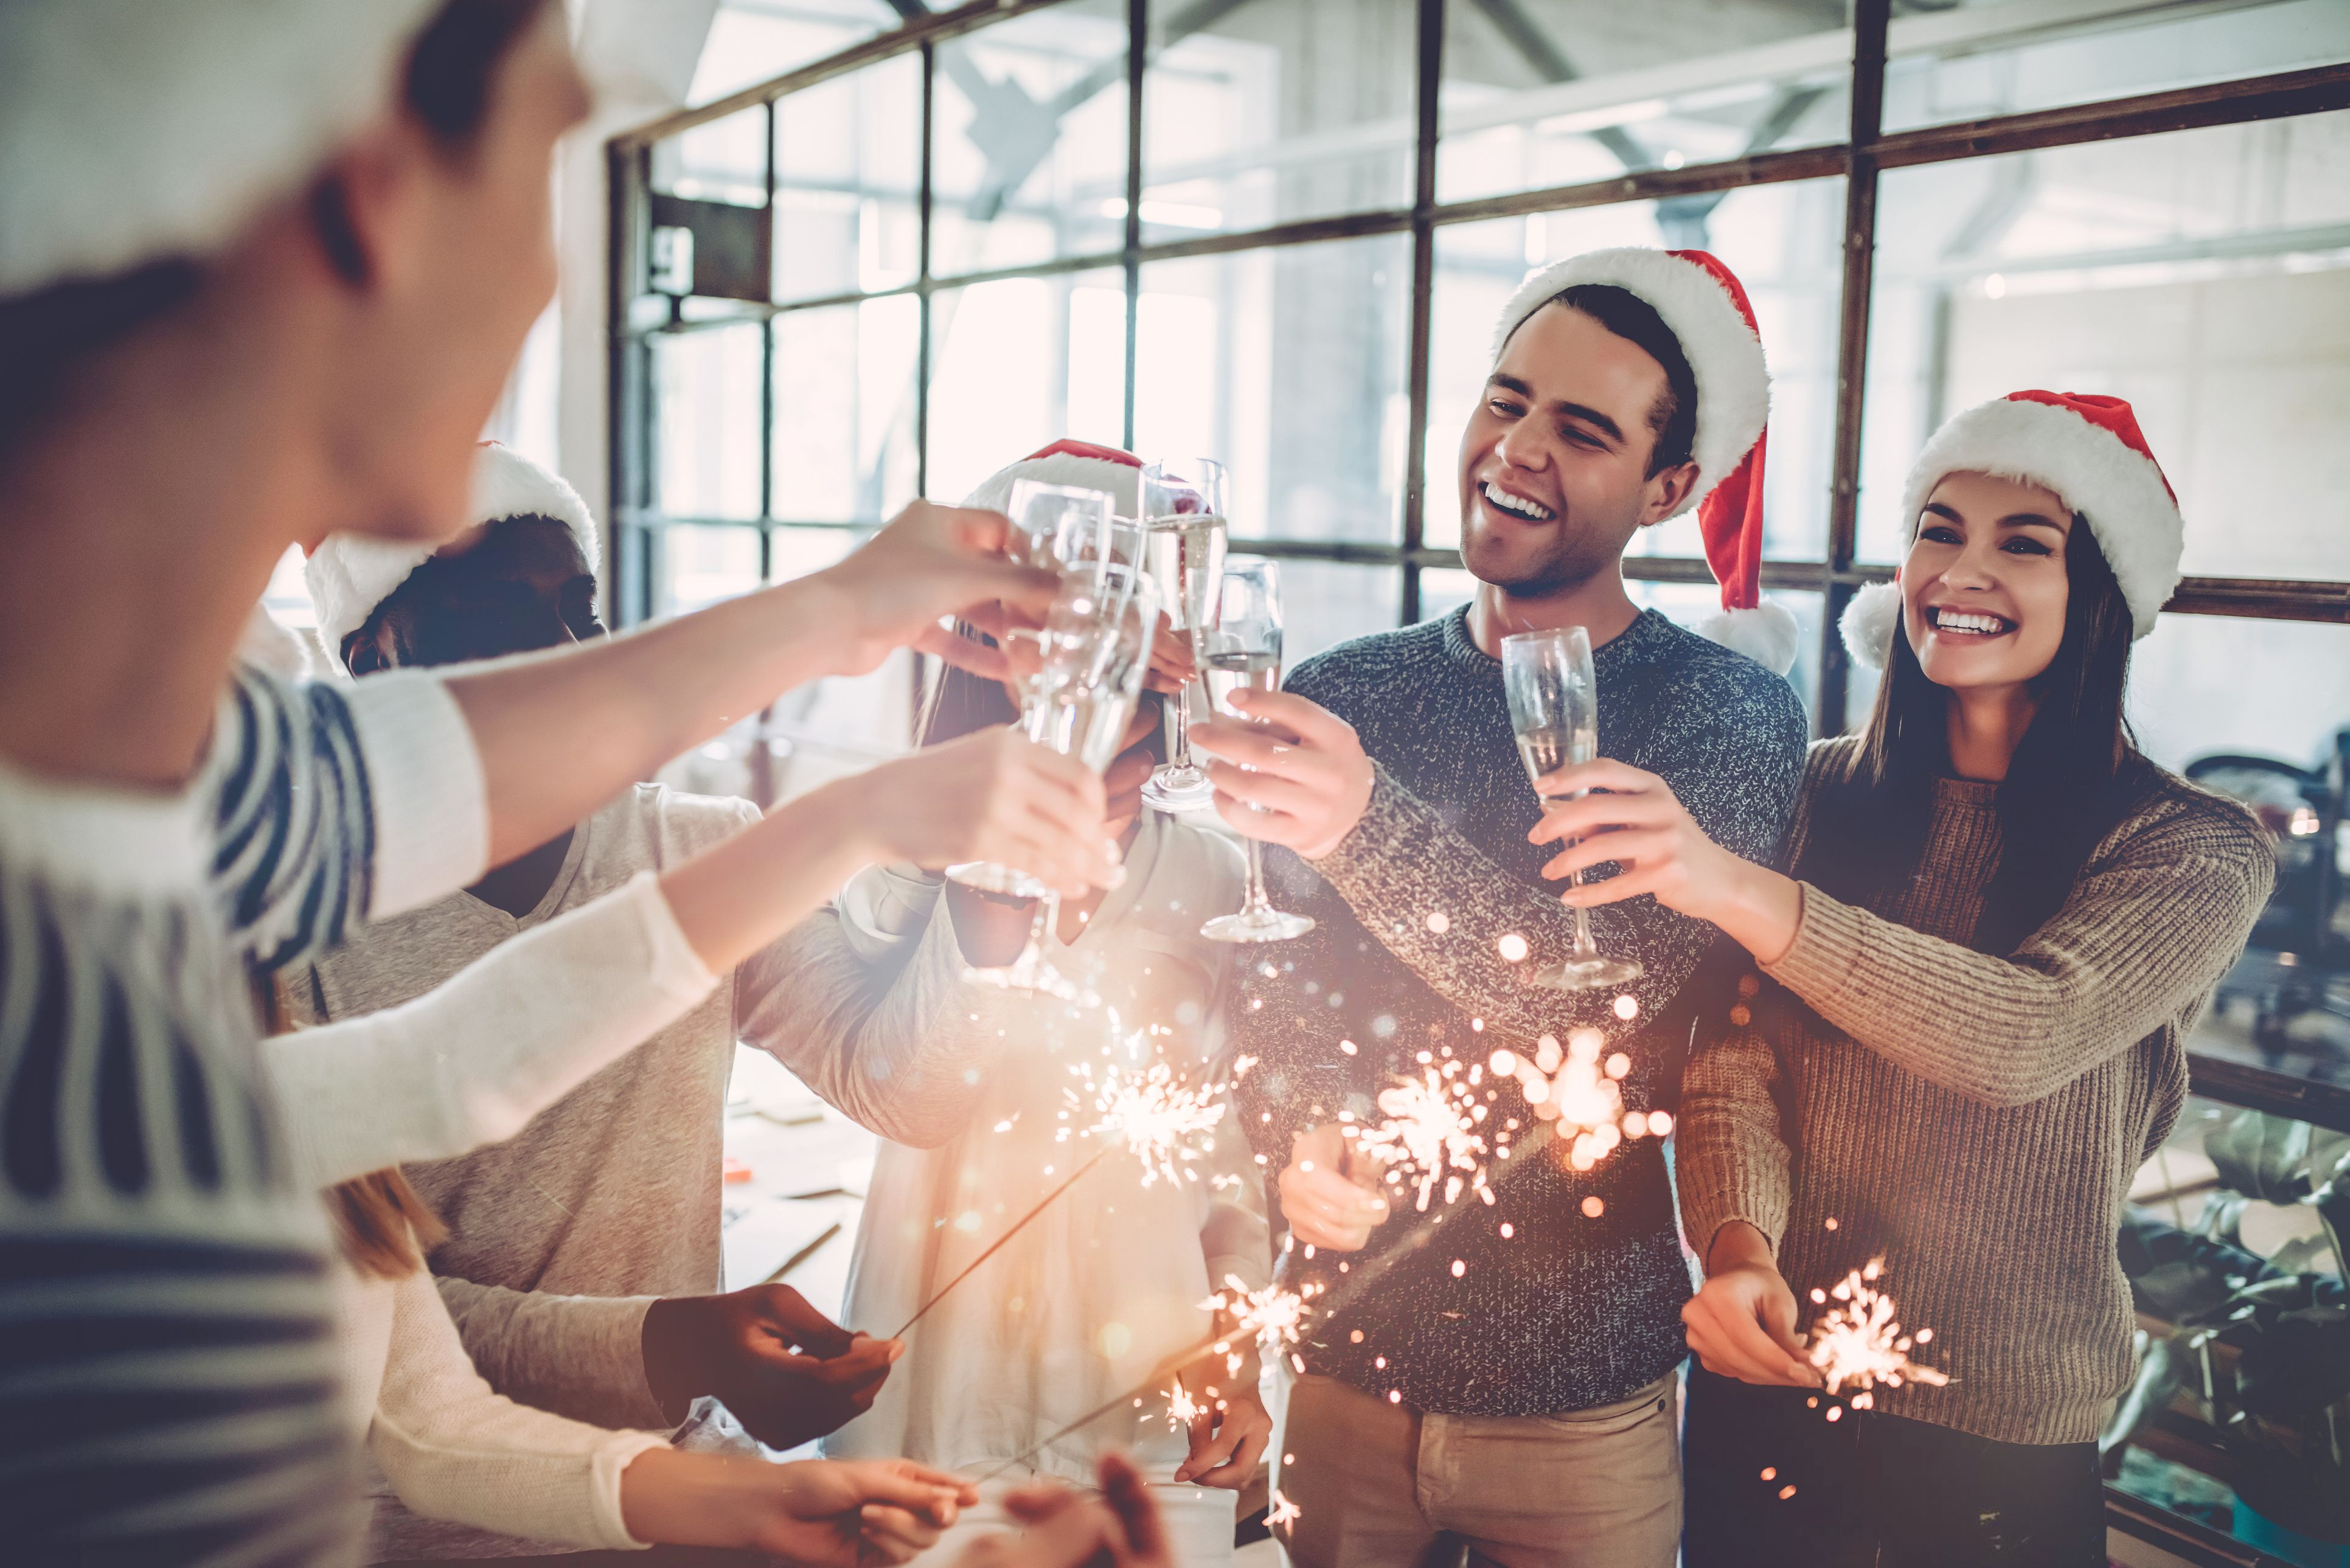 13 Tips for Stress-Free Holiday Entertaining